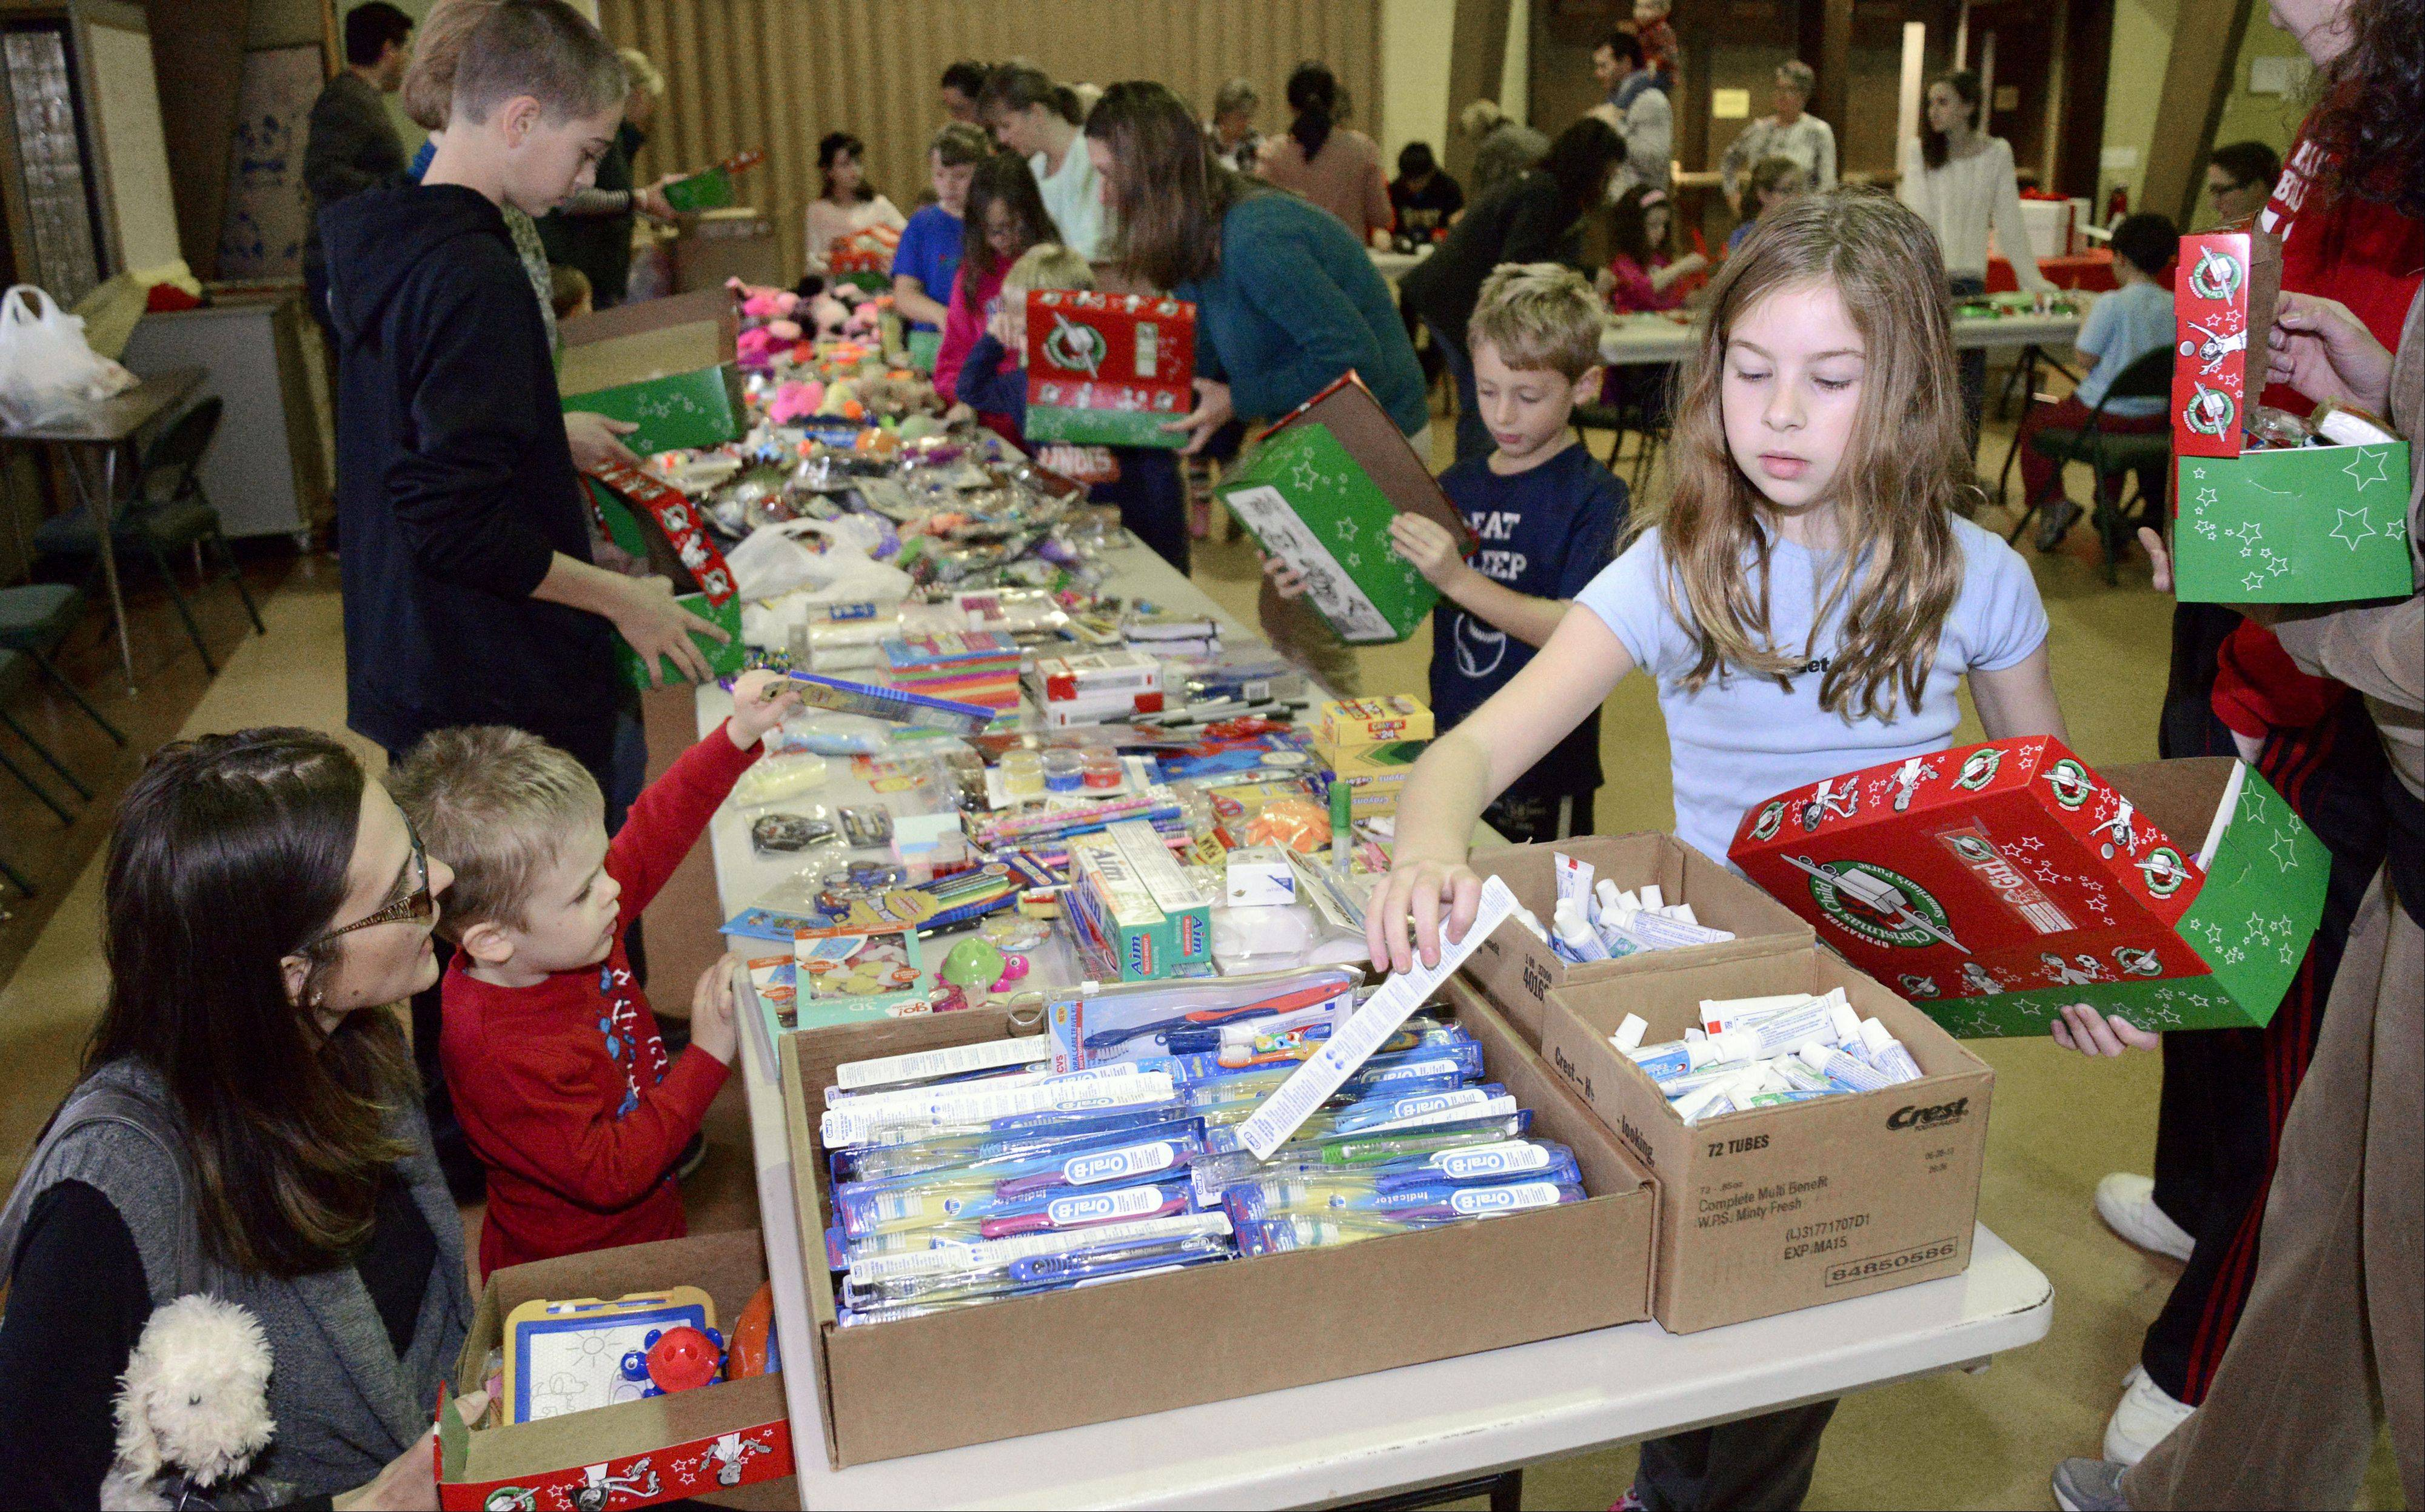 Jen Katsenios and her 3-year-old son, TJ, of Elgin, left, and Kelsie Hoffmann, 9, of Batavia fill shoe boxes full of goodies at the Operation Christmas Child packing party at St. Mark�s Preschool in St. Charles on Saturday. TJ attends the preschool. It was his first time at the event.